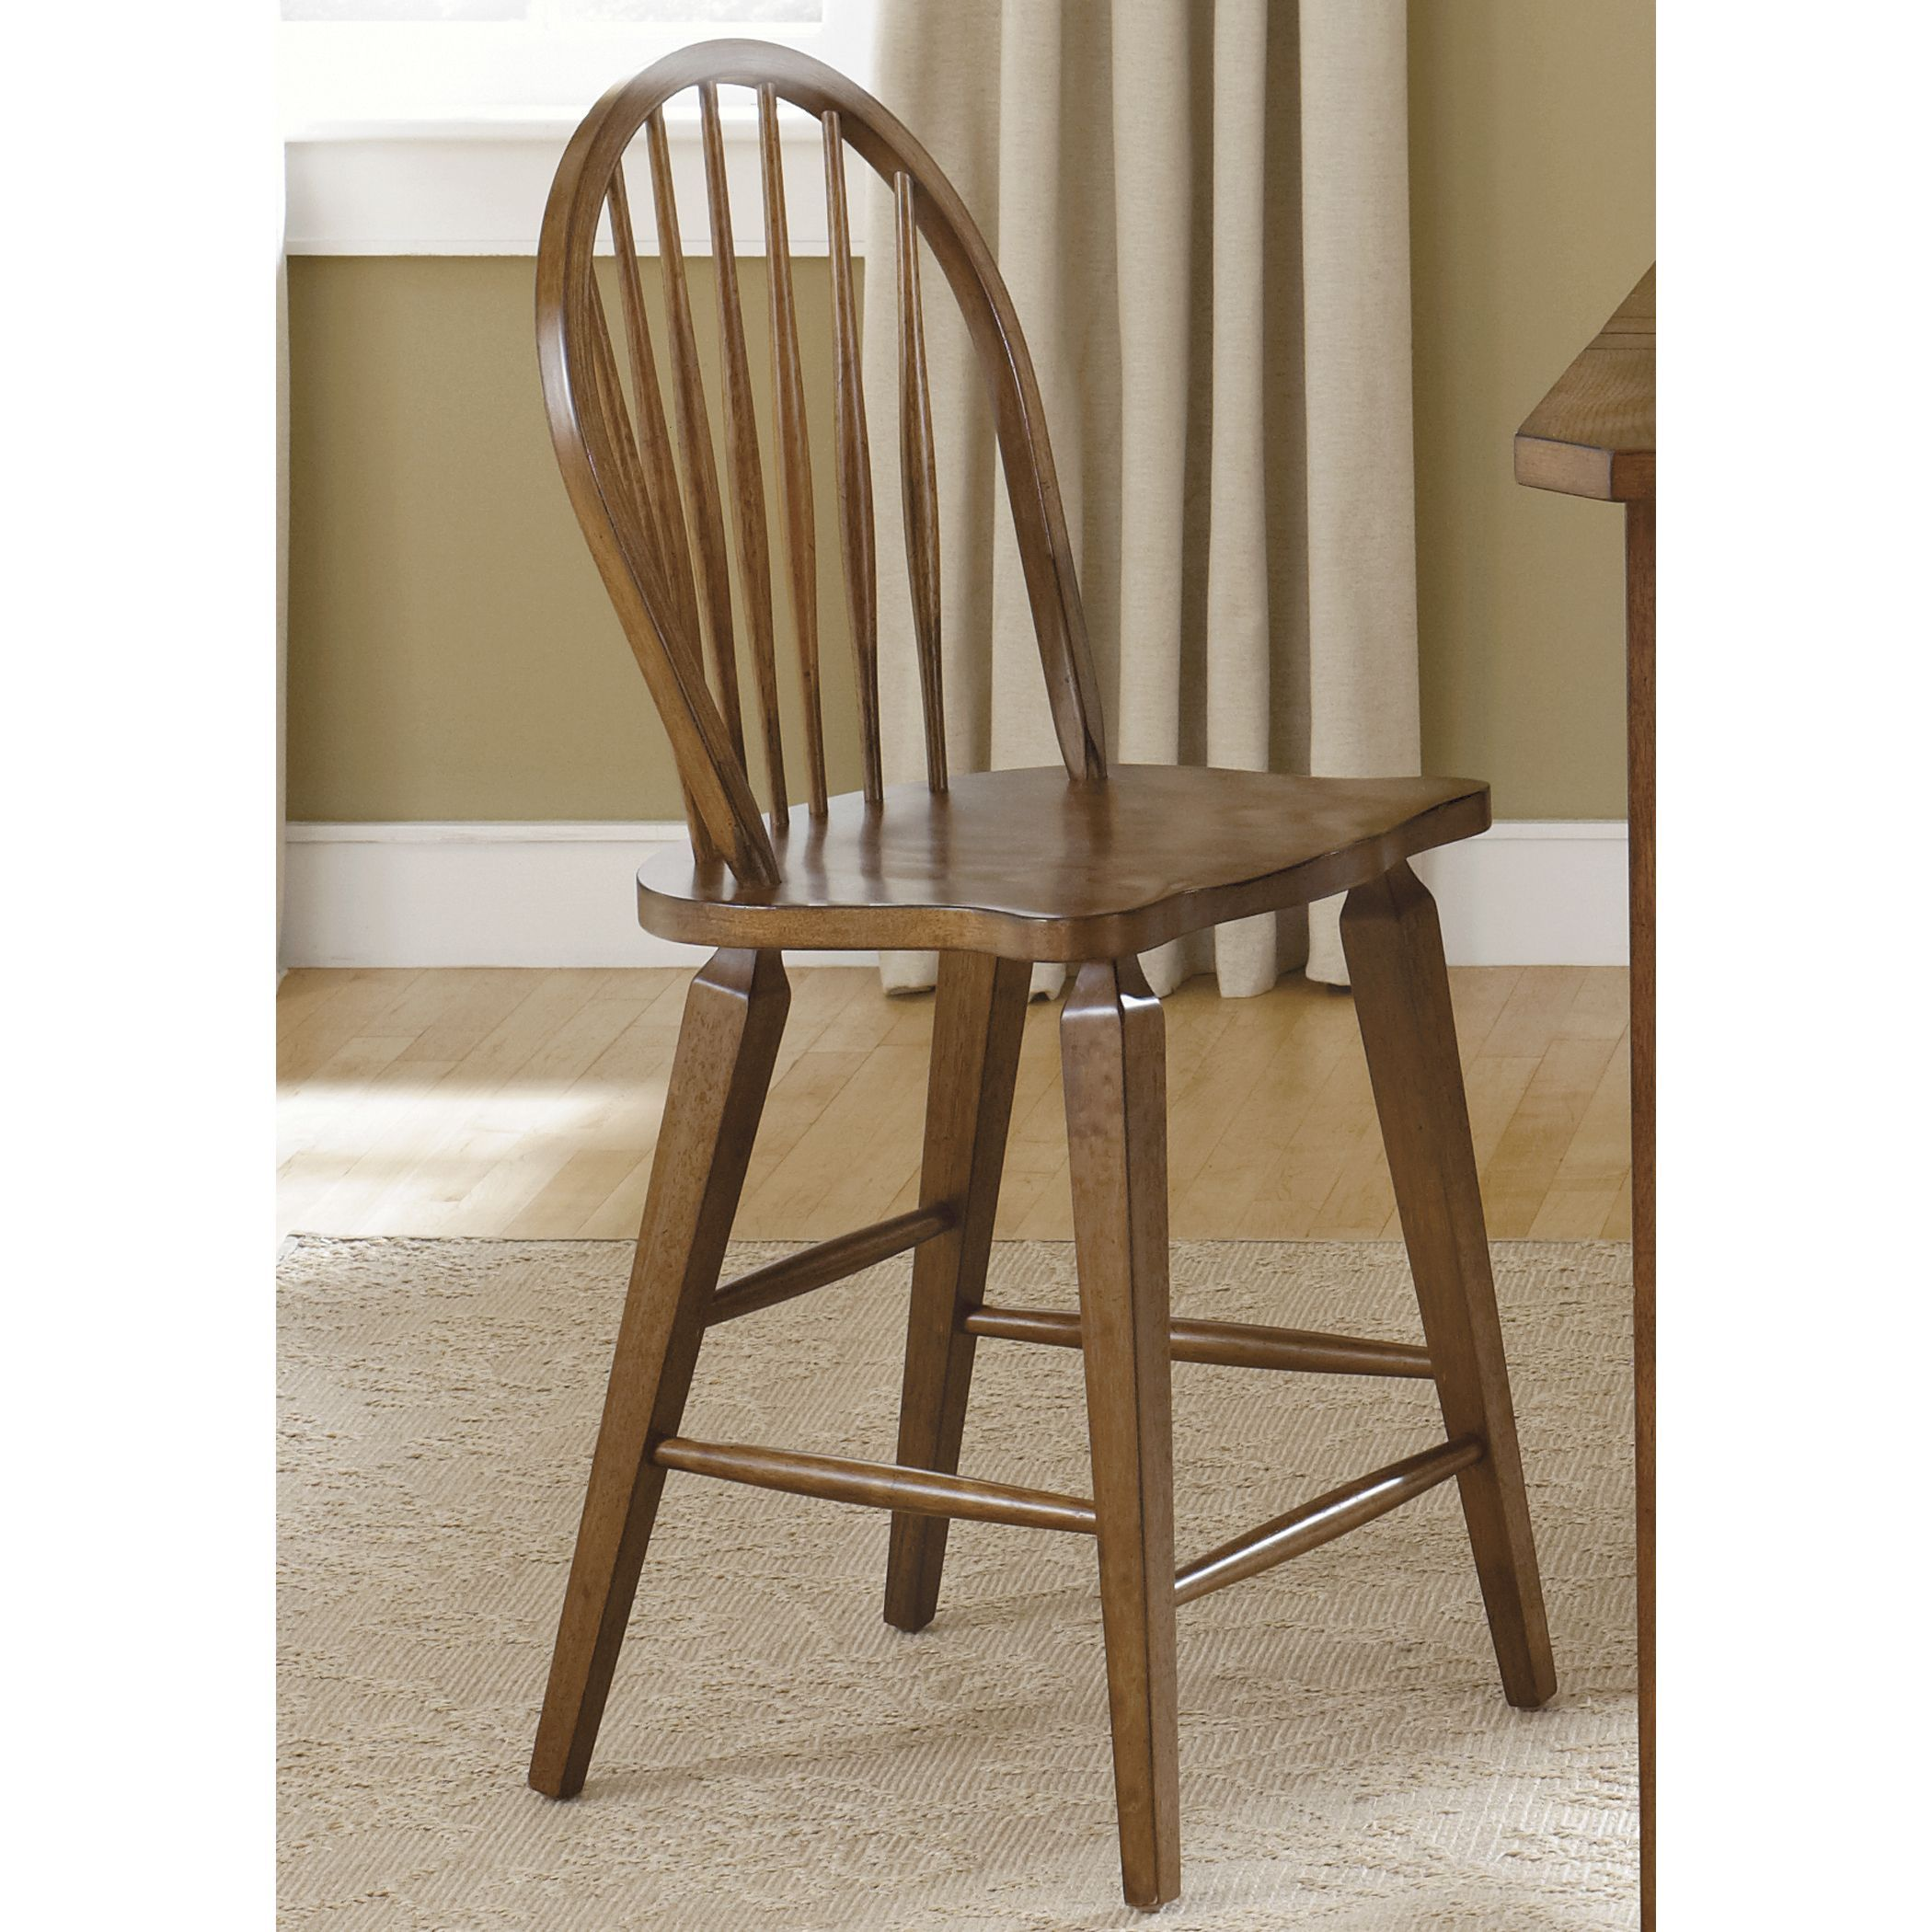 This stylish swivel 24-inch barstool with arms is crafted from high-quality wood to provide a stunning and functional addition to your home decor. This stylish swivel 24-inch barstool with arms  features a rustic oak  finish and adds beauty to any space.